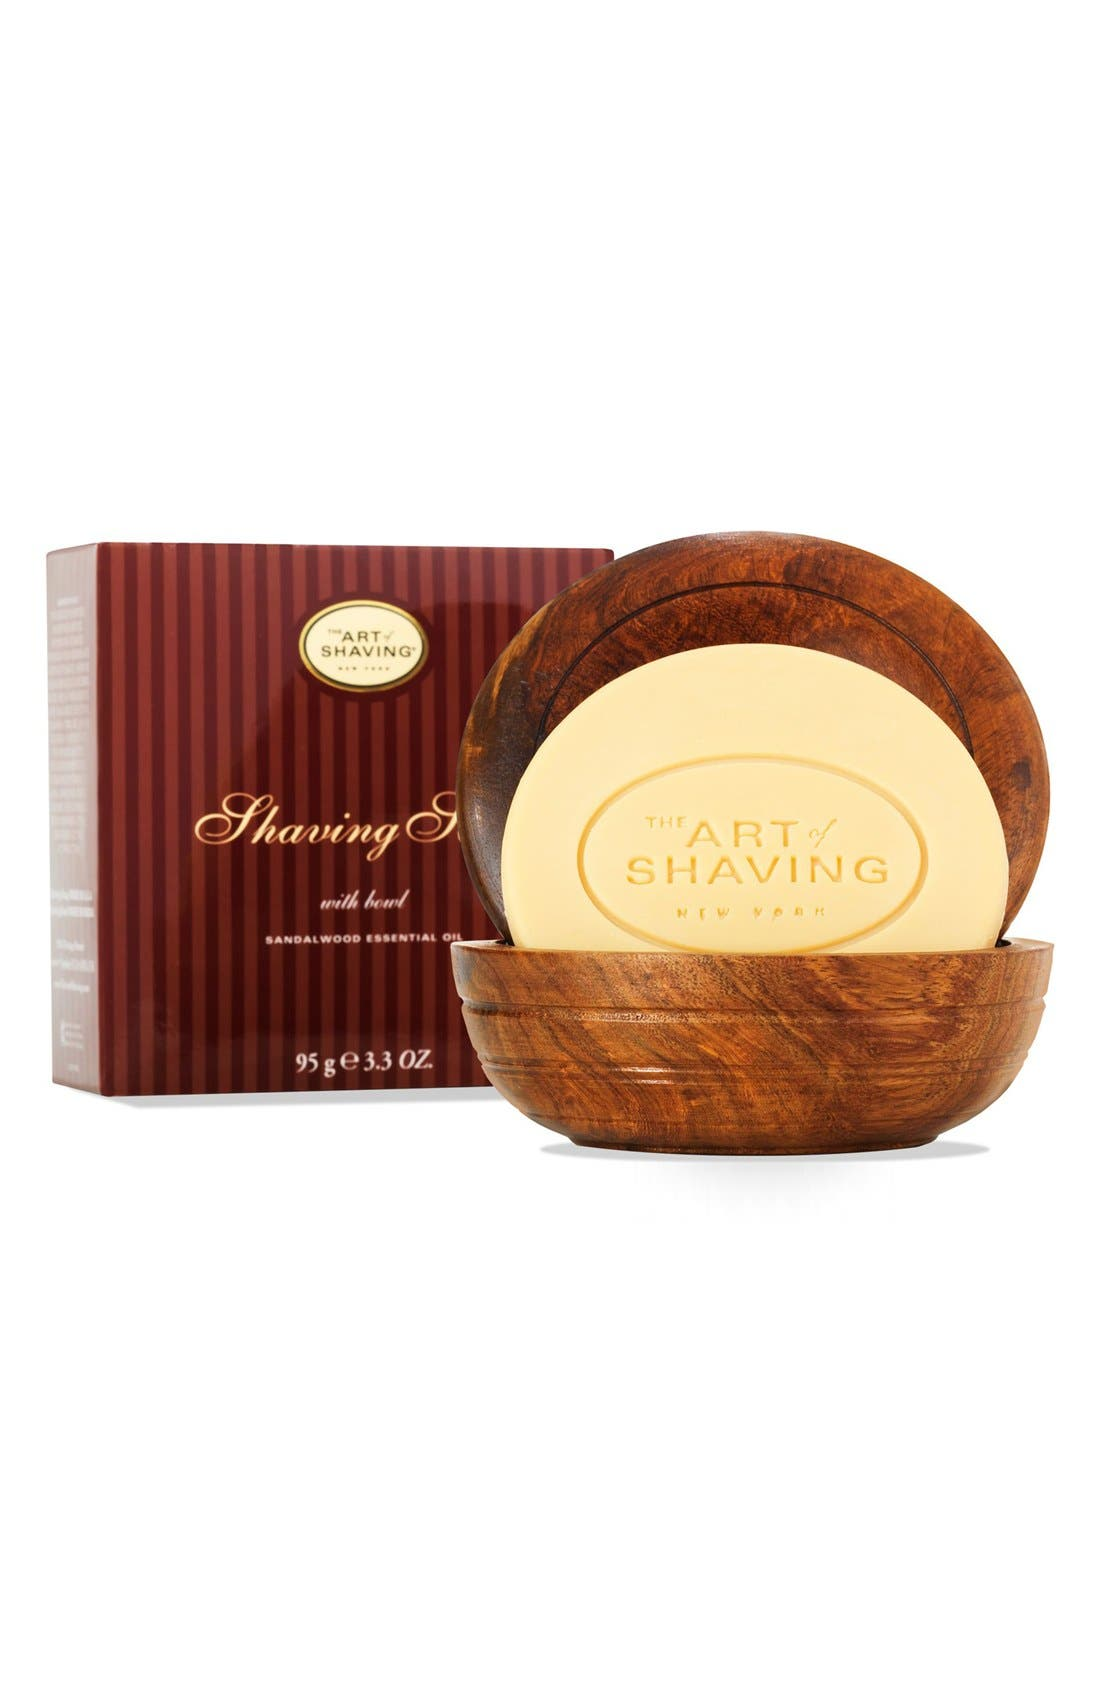 Sandalwood Shaving Soap with Bowl,                             Main thumbnail 1, color,                             000